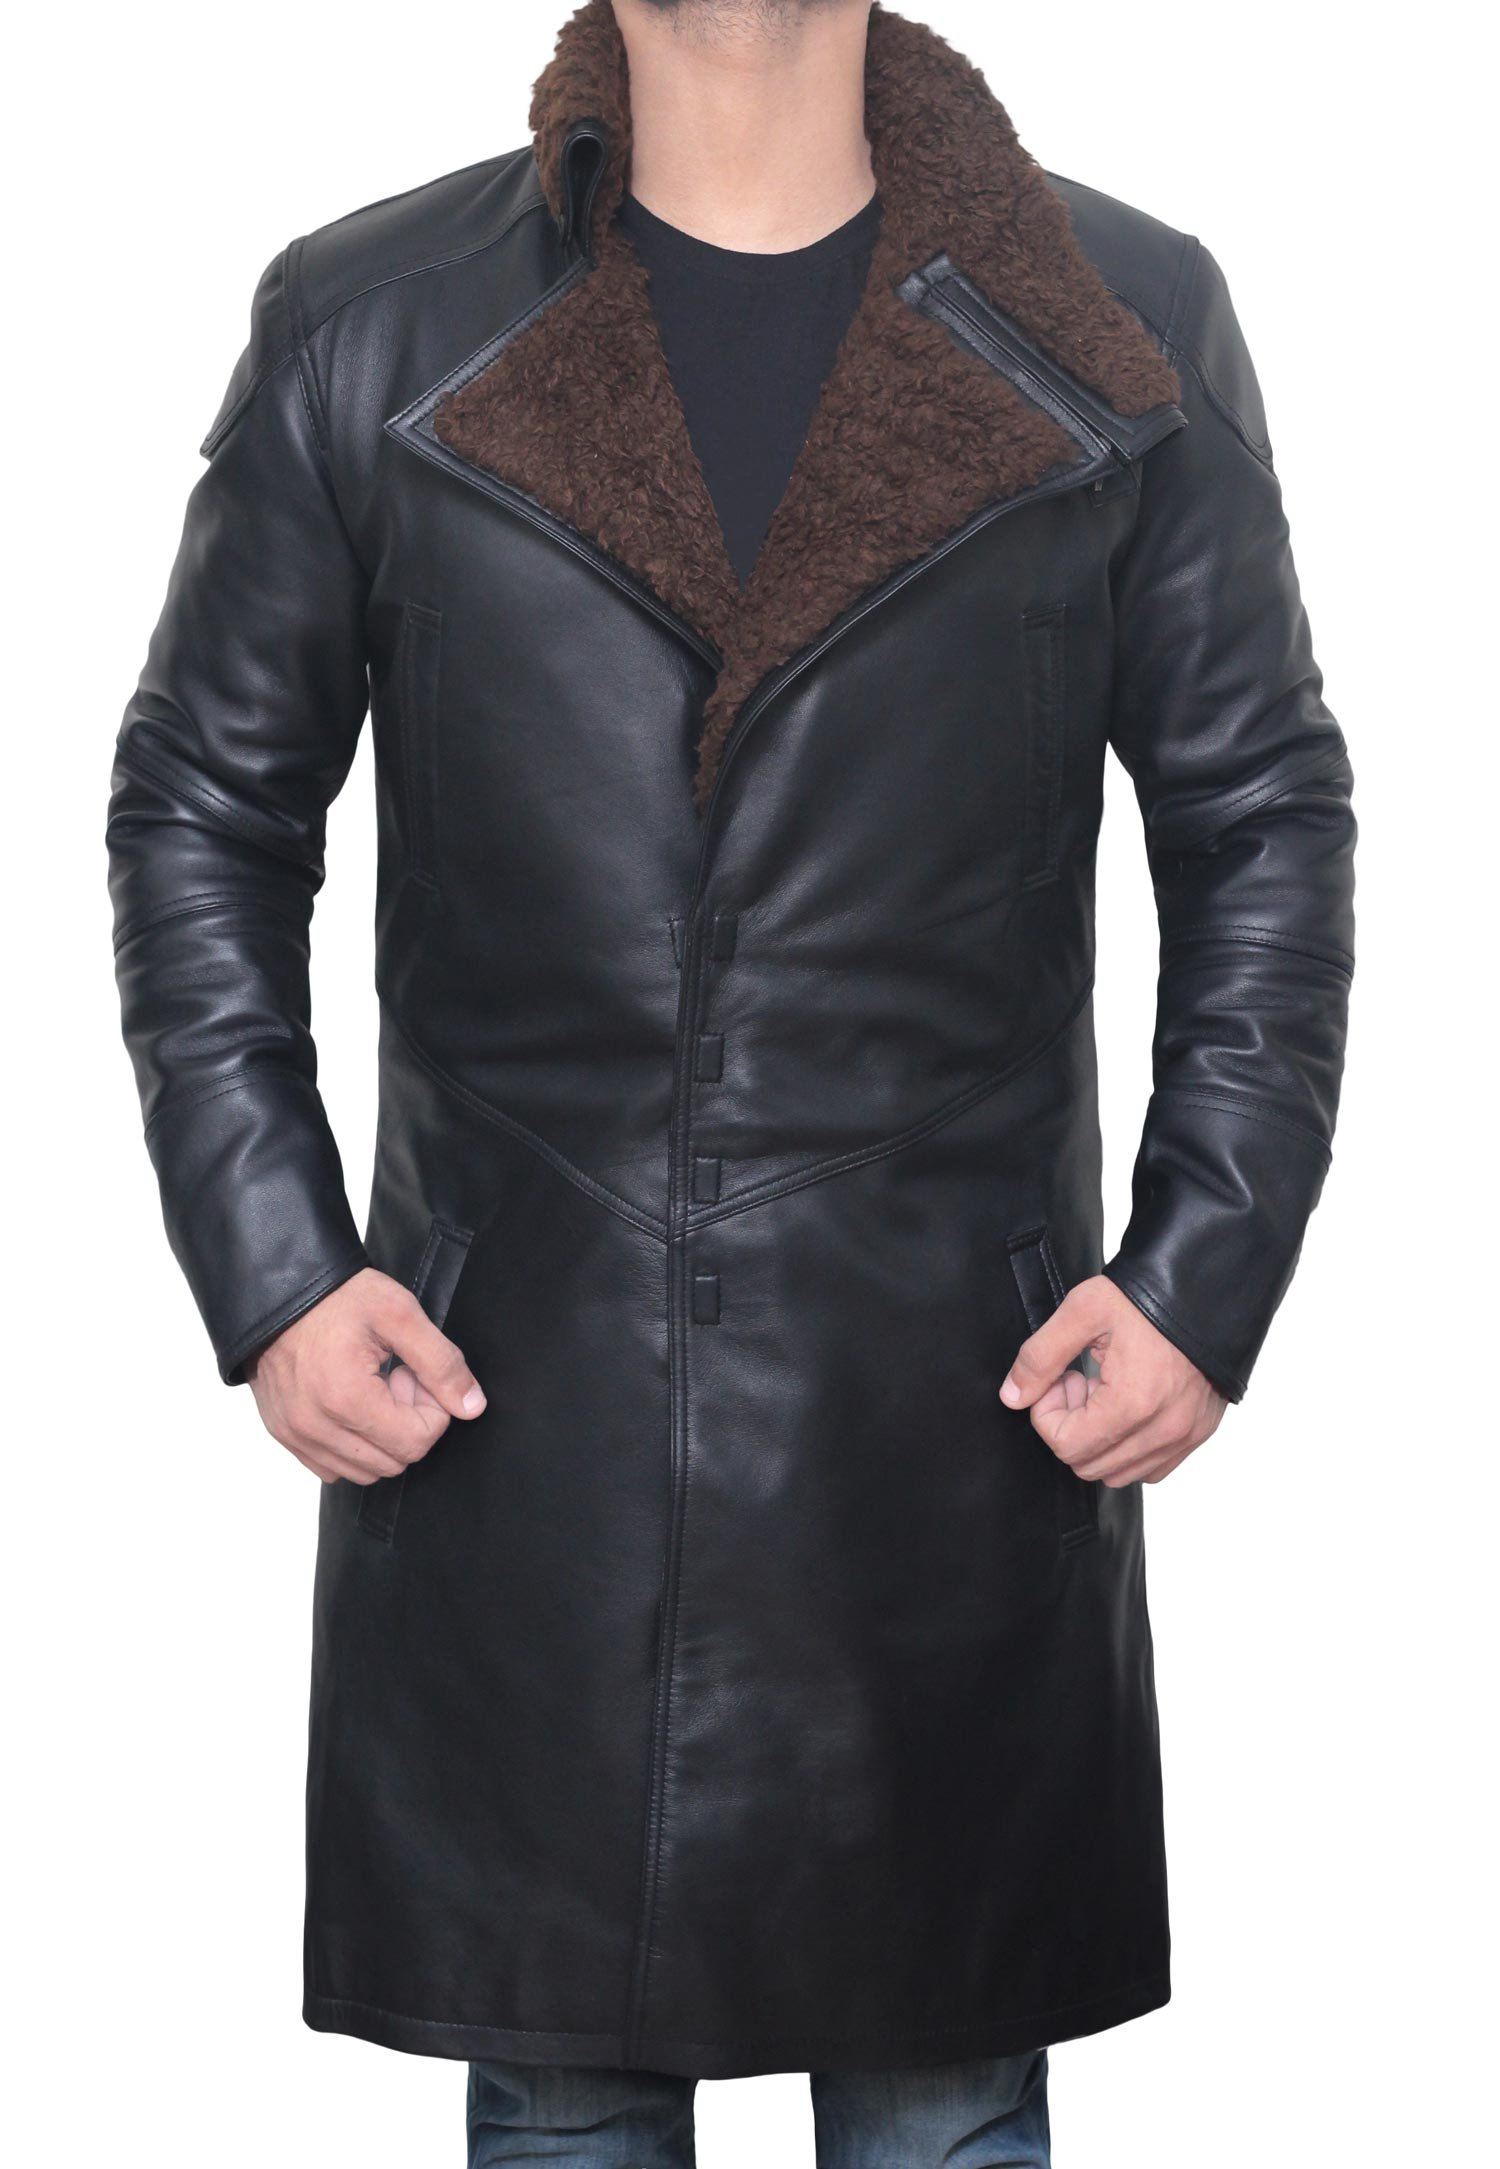 Decrum Mens Magnet Closure Real Leather Jacket - Ryan Gosling Real Leather Coat | M